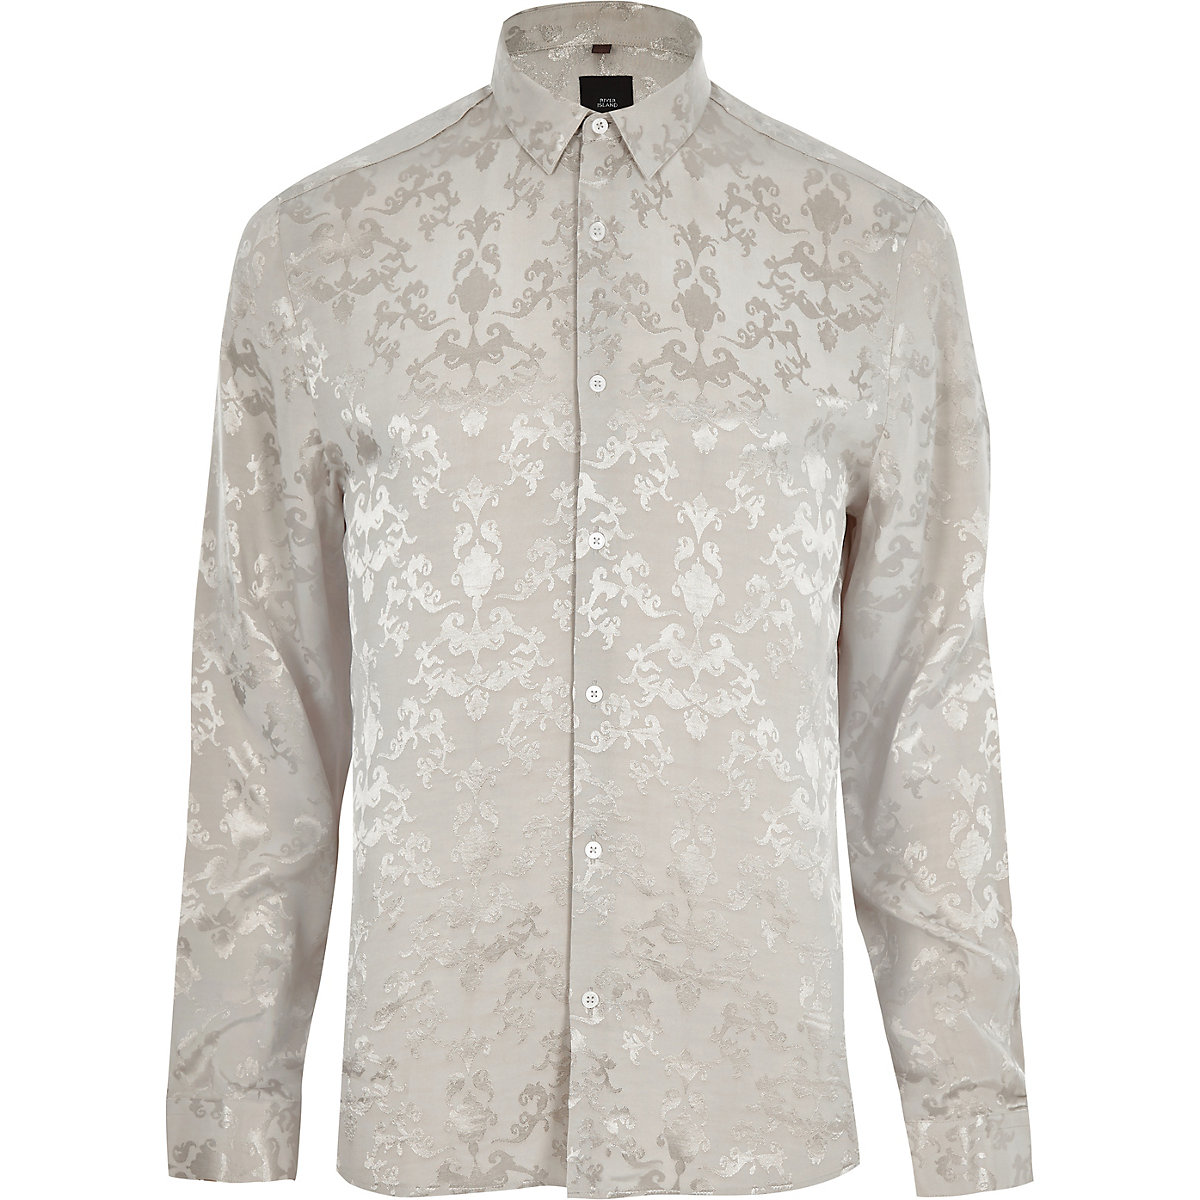 Ecru jacquard long sleeve shirt